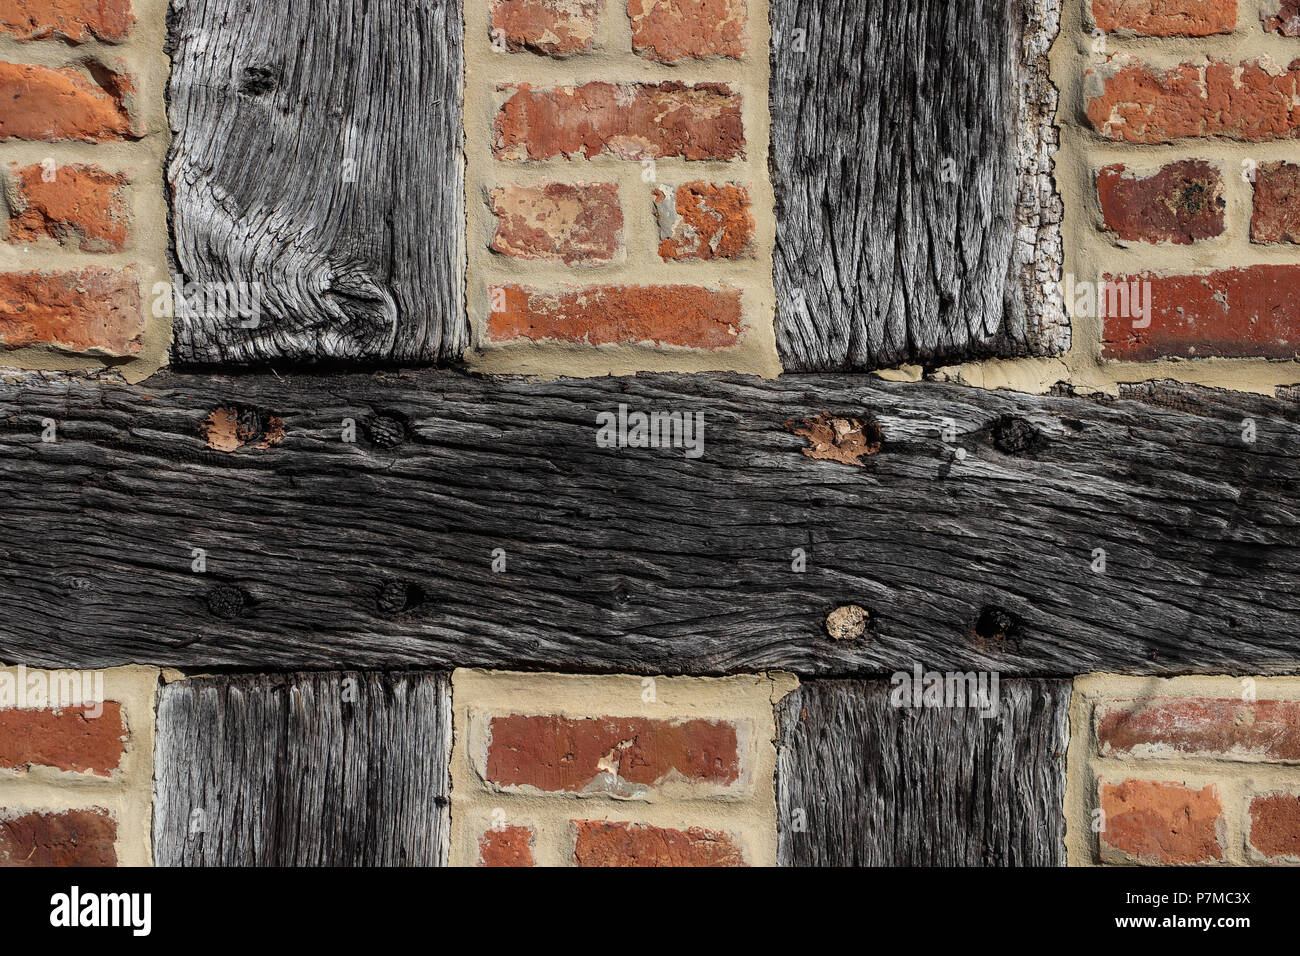 Closeup of the weathered timbers and brick infill on a 17th C timber-framed house;the timbers are held together by cross halving joint with wood pegs - Stock Image